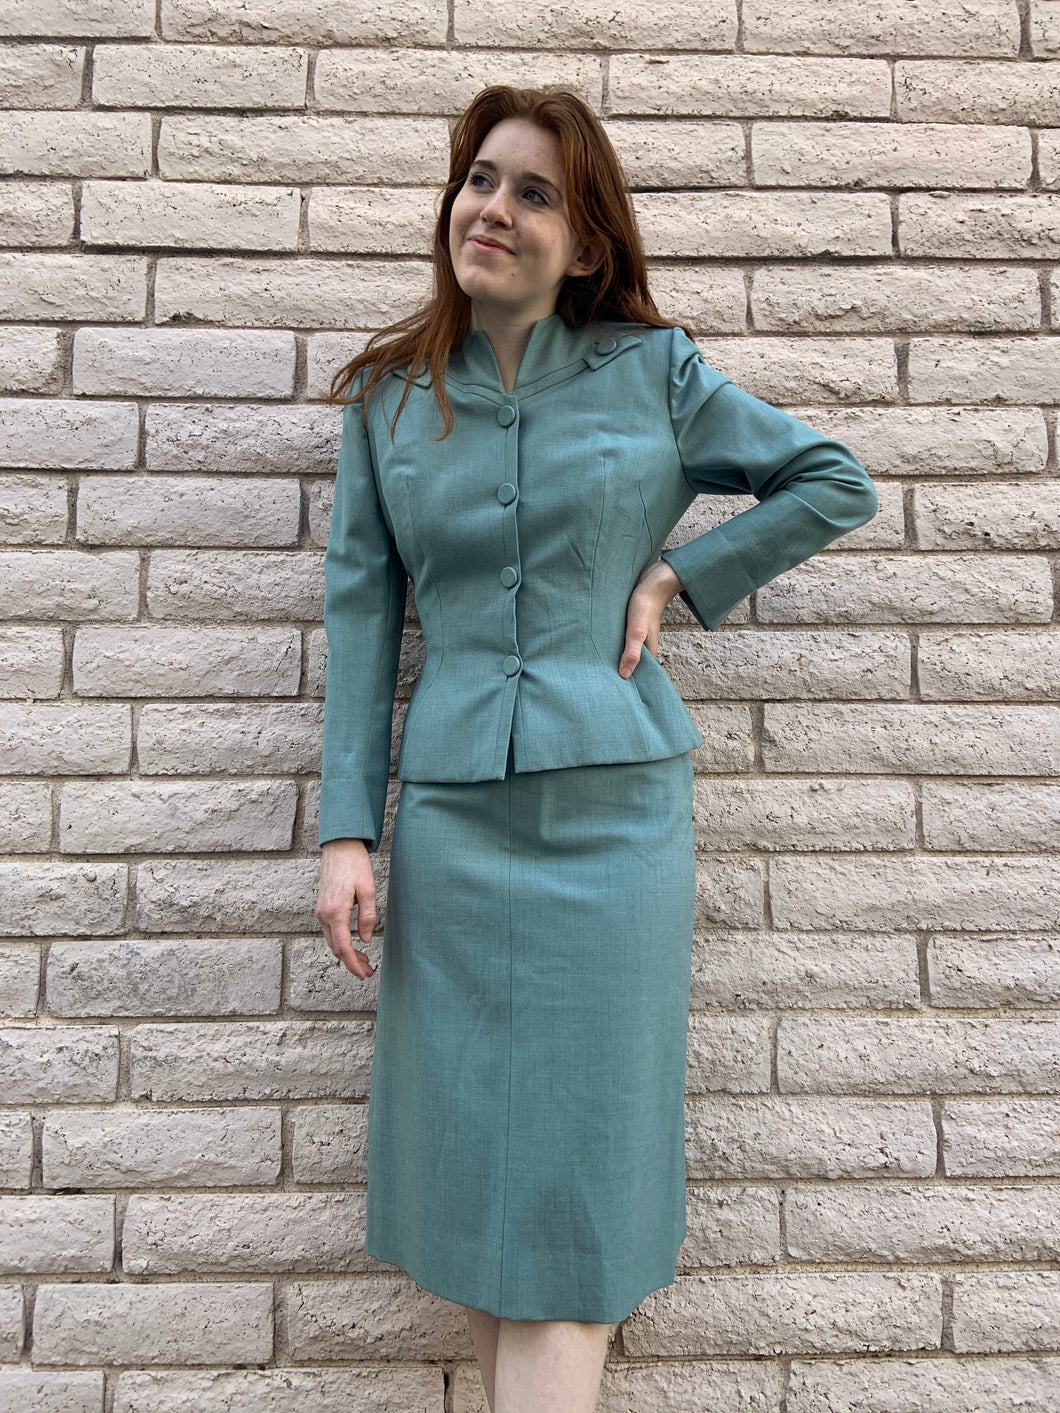 1940s Seafoam Green Two Piece Skirt Suit